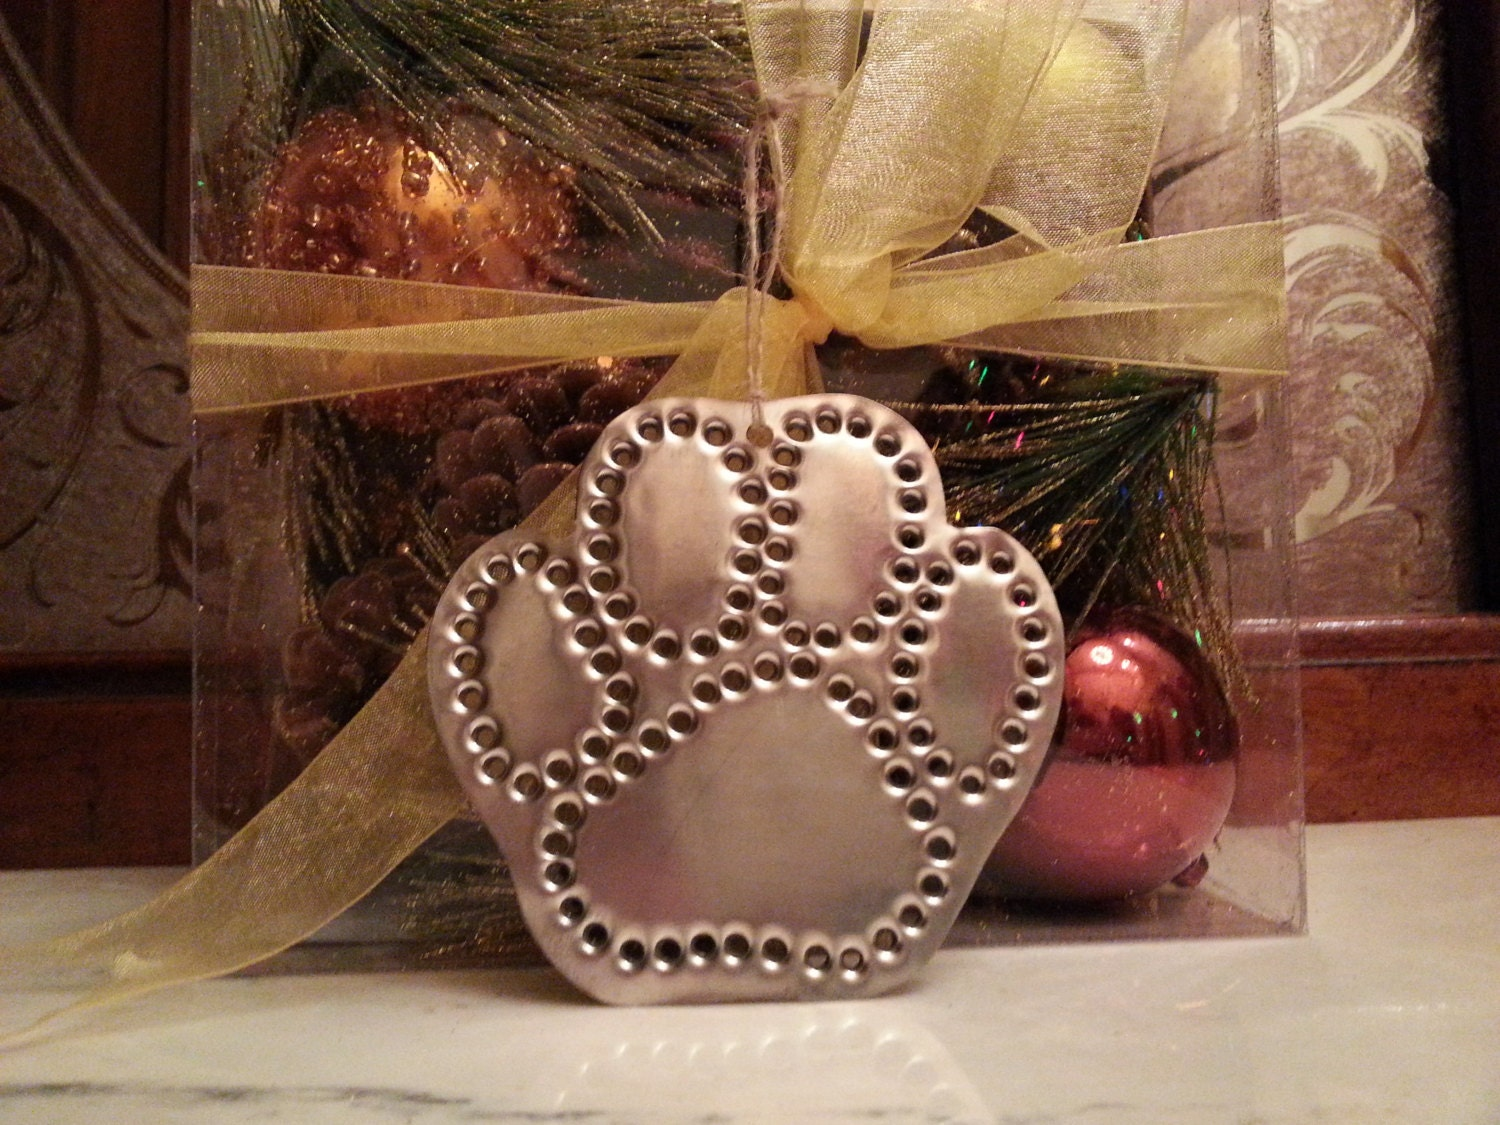 Paw Print Ornament Handmade Old Fashioned Tin Punch By West